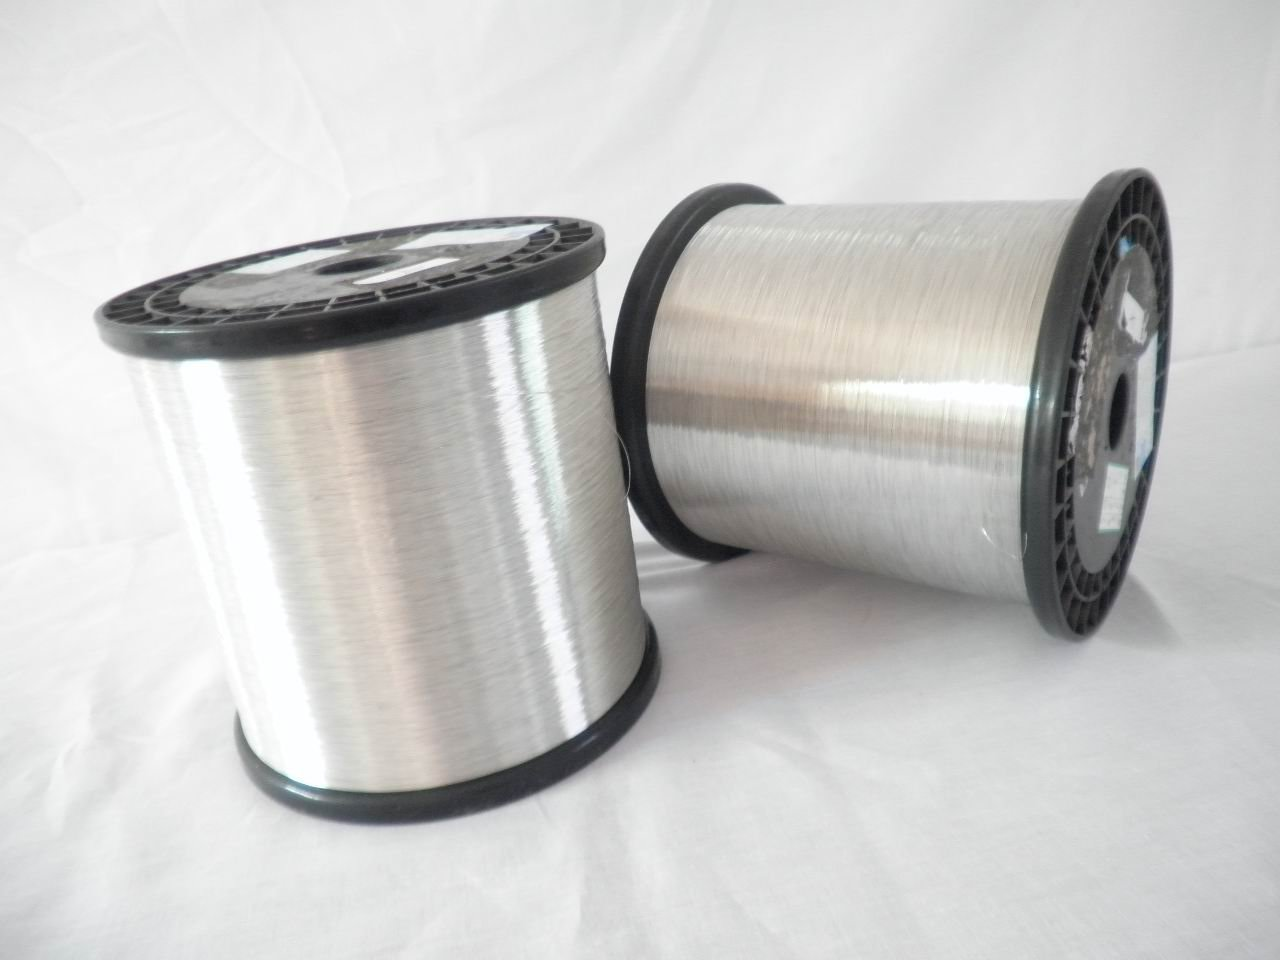 Pure Silver Wires, Pure Silver Wires Suppliers and Manufacturers at ...